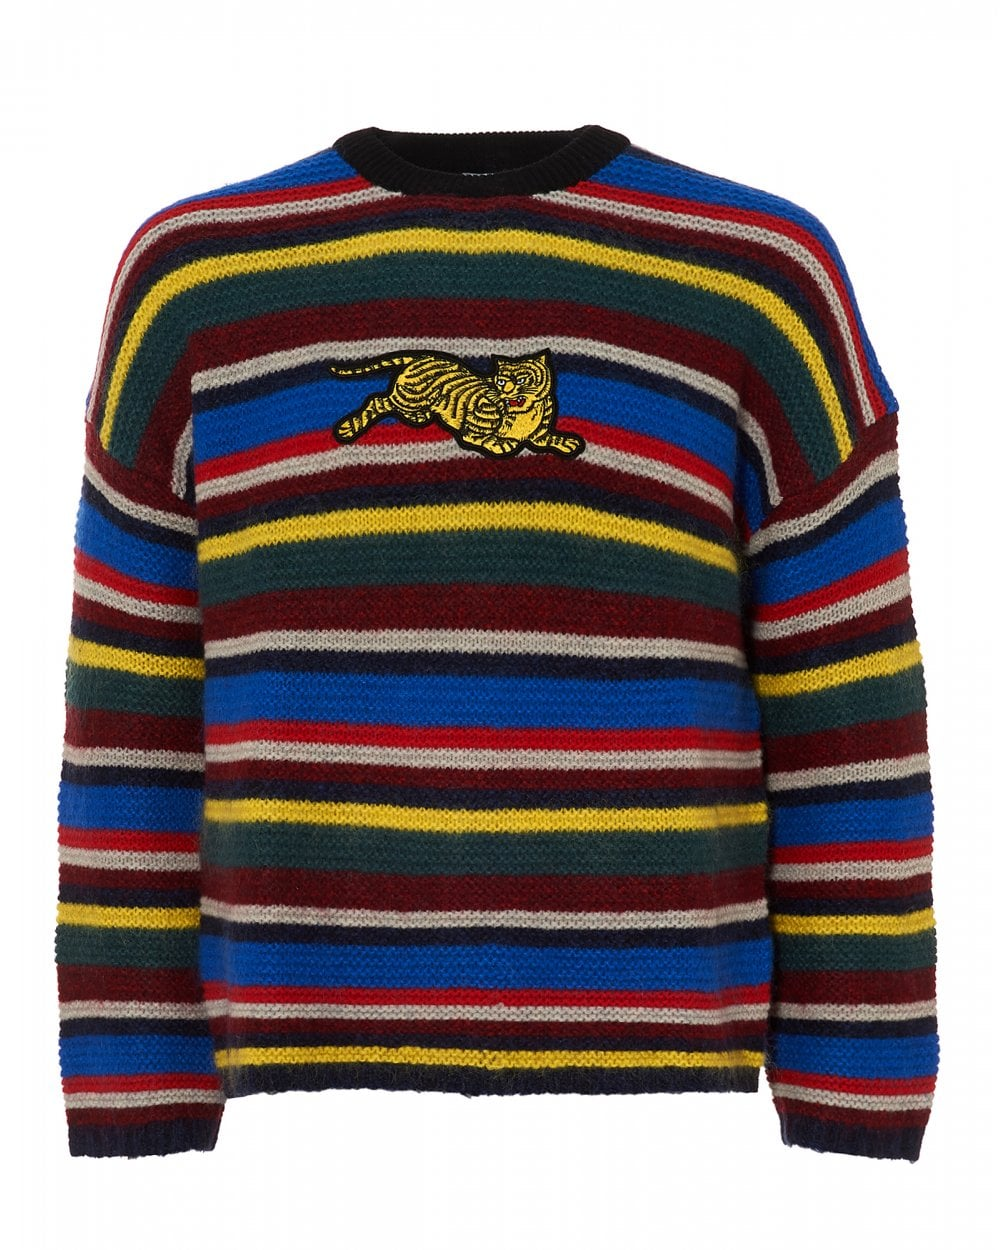 Kenzo Mens Jumping Tiger Striped Jumper Multi Coloured Sweater